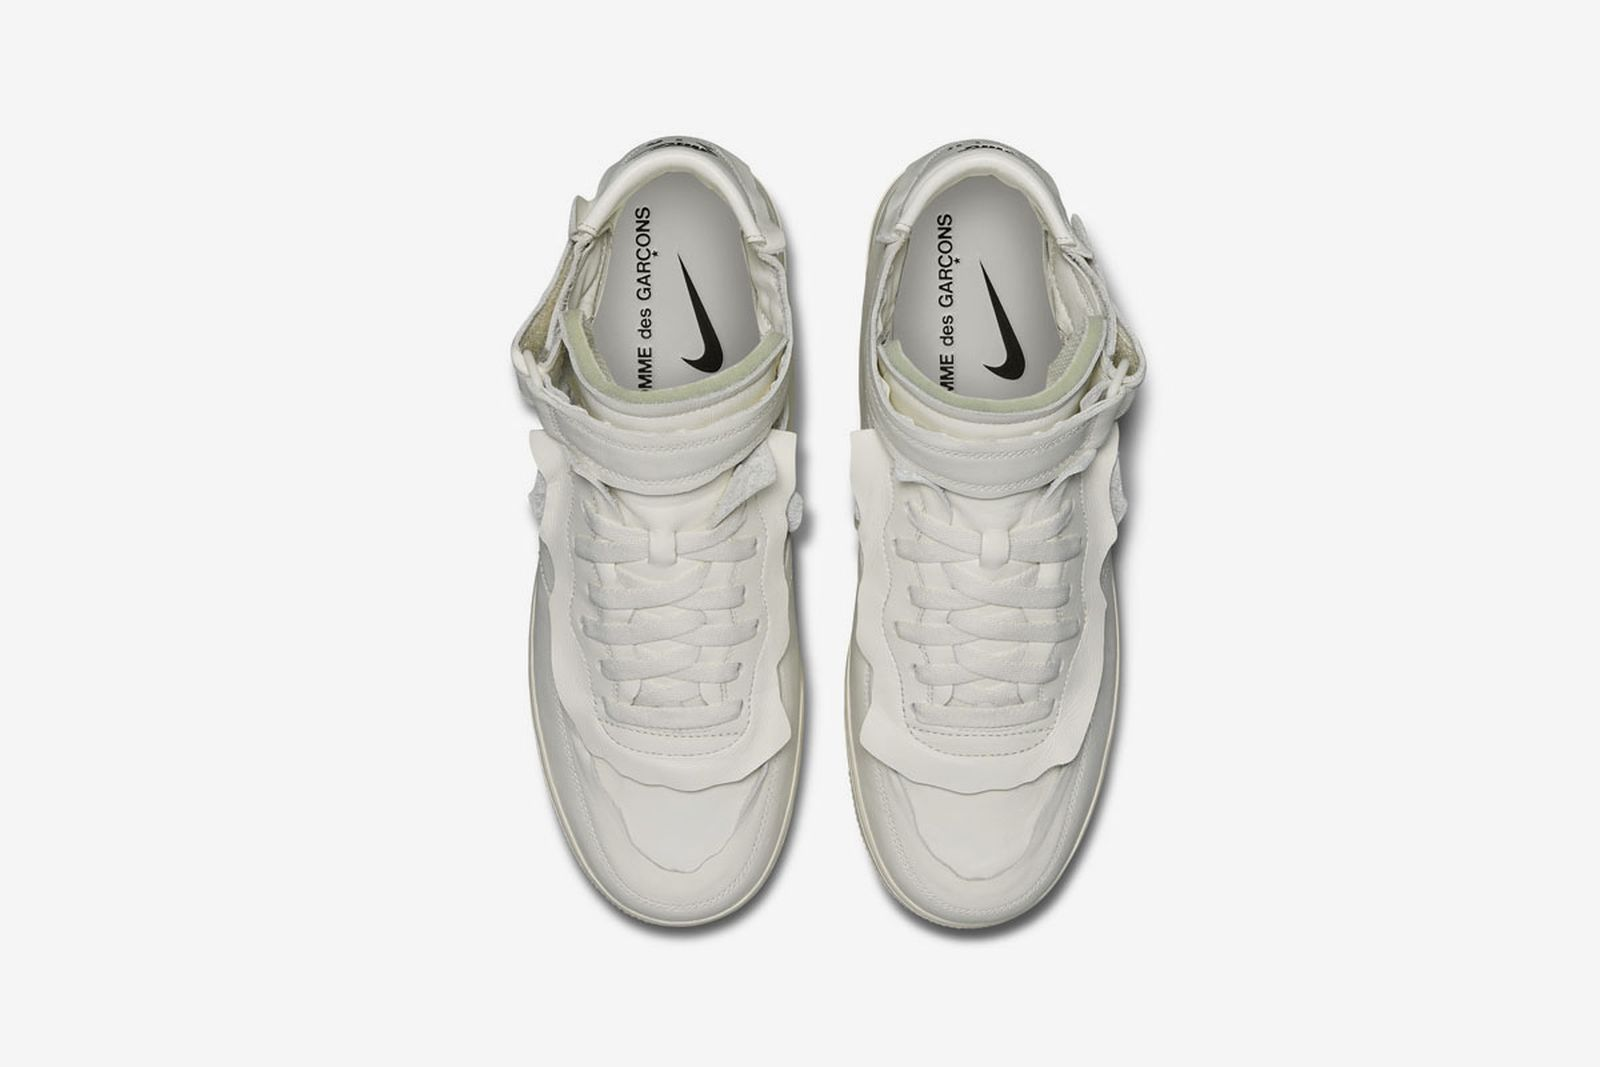 comme-des-garcons-nike-air-force-1-mid-release-date-price-018